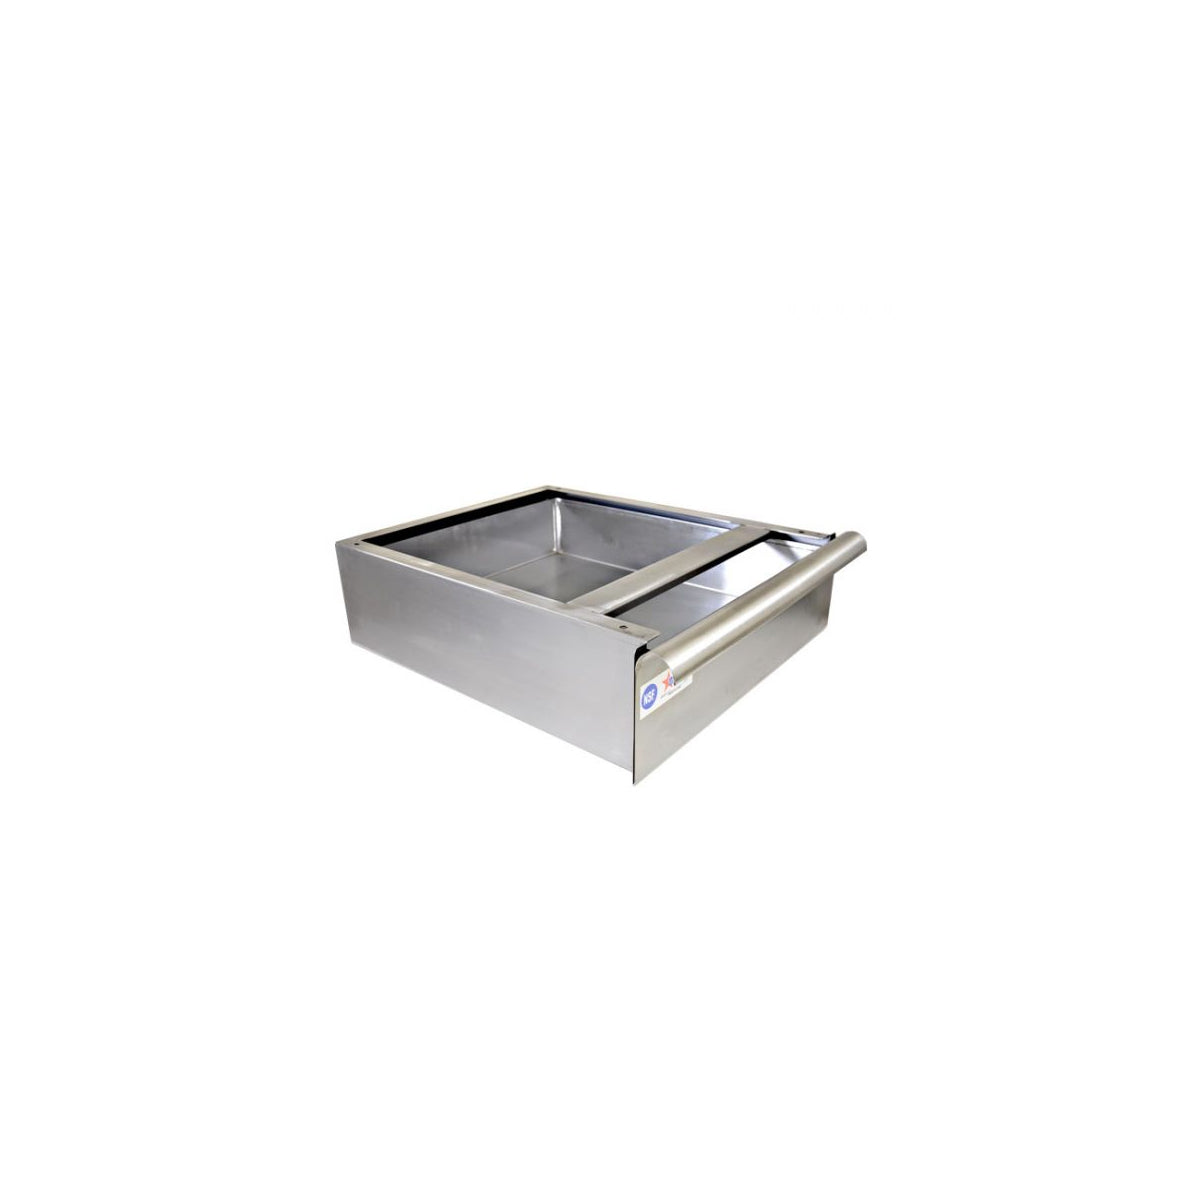 "Stainless Steel Drawer and Frame for 30"" Deep Work Tables"